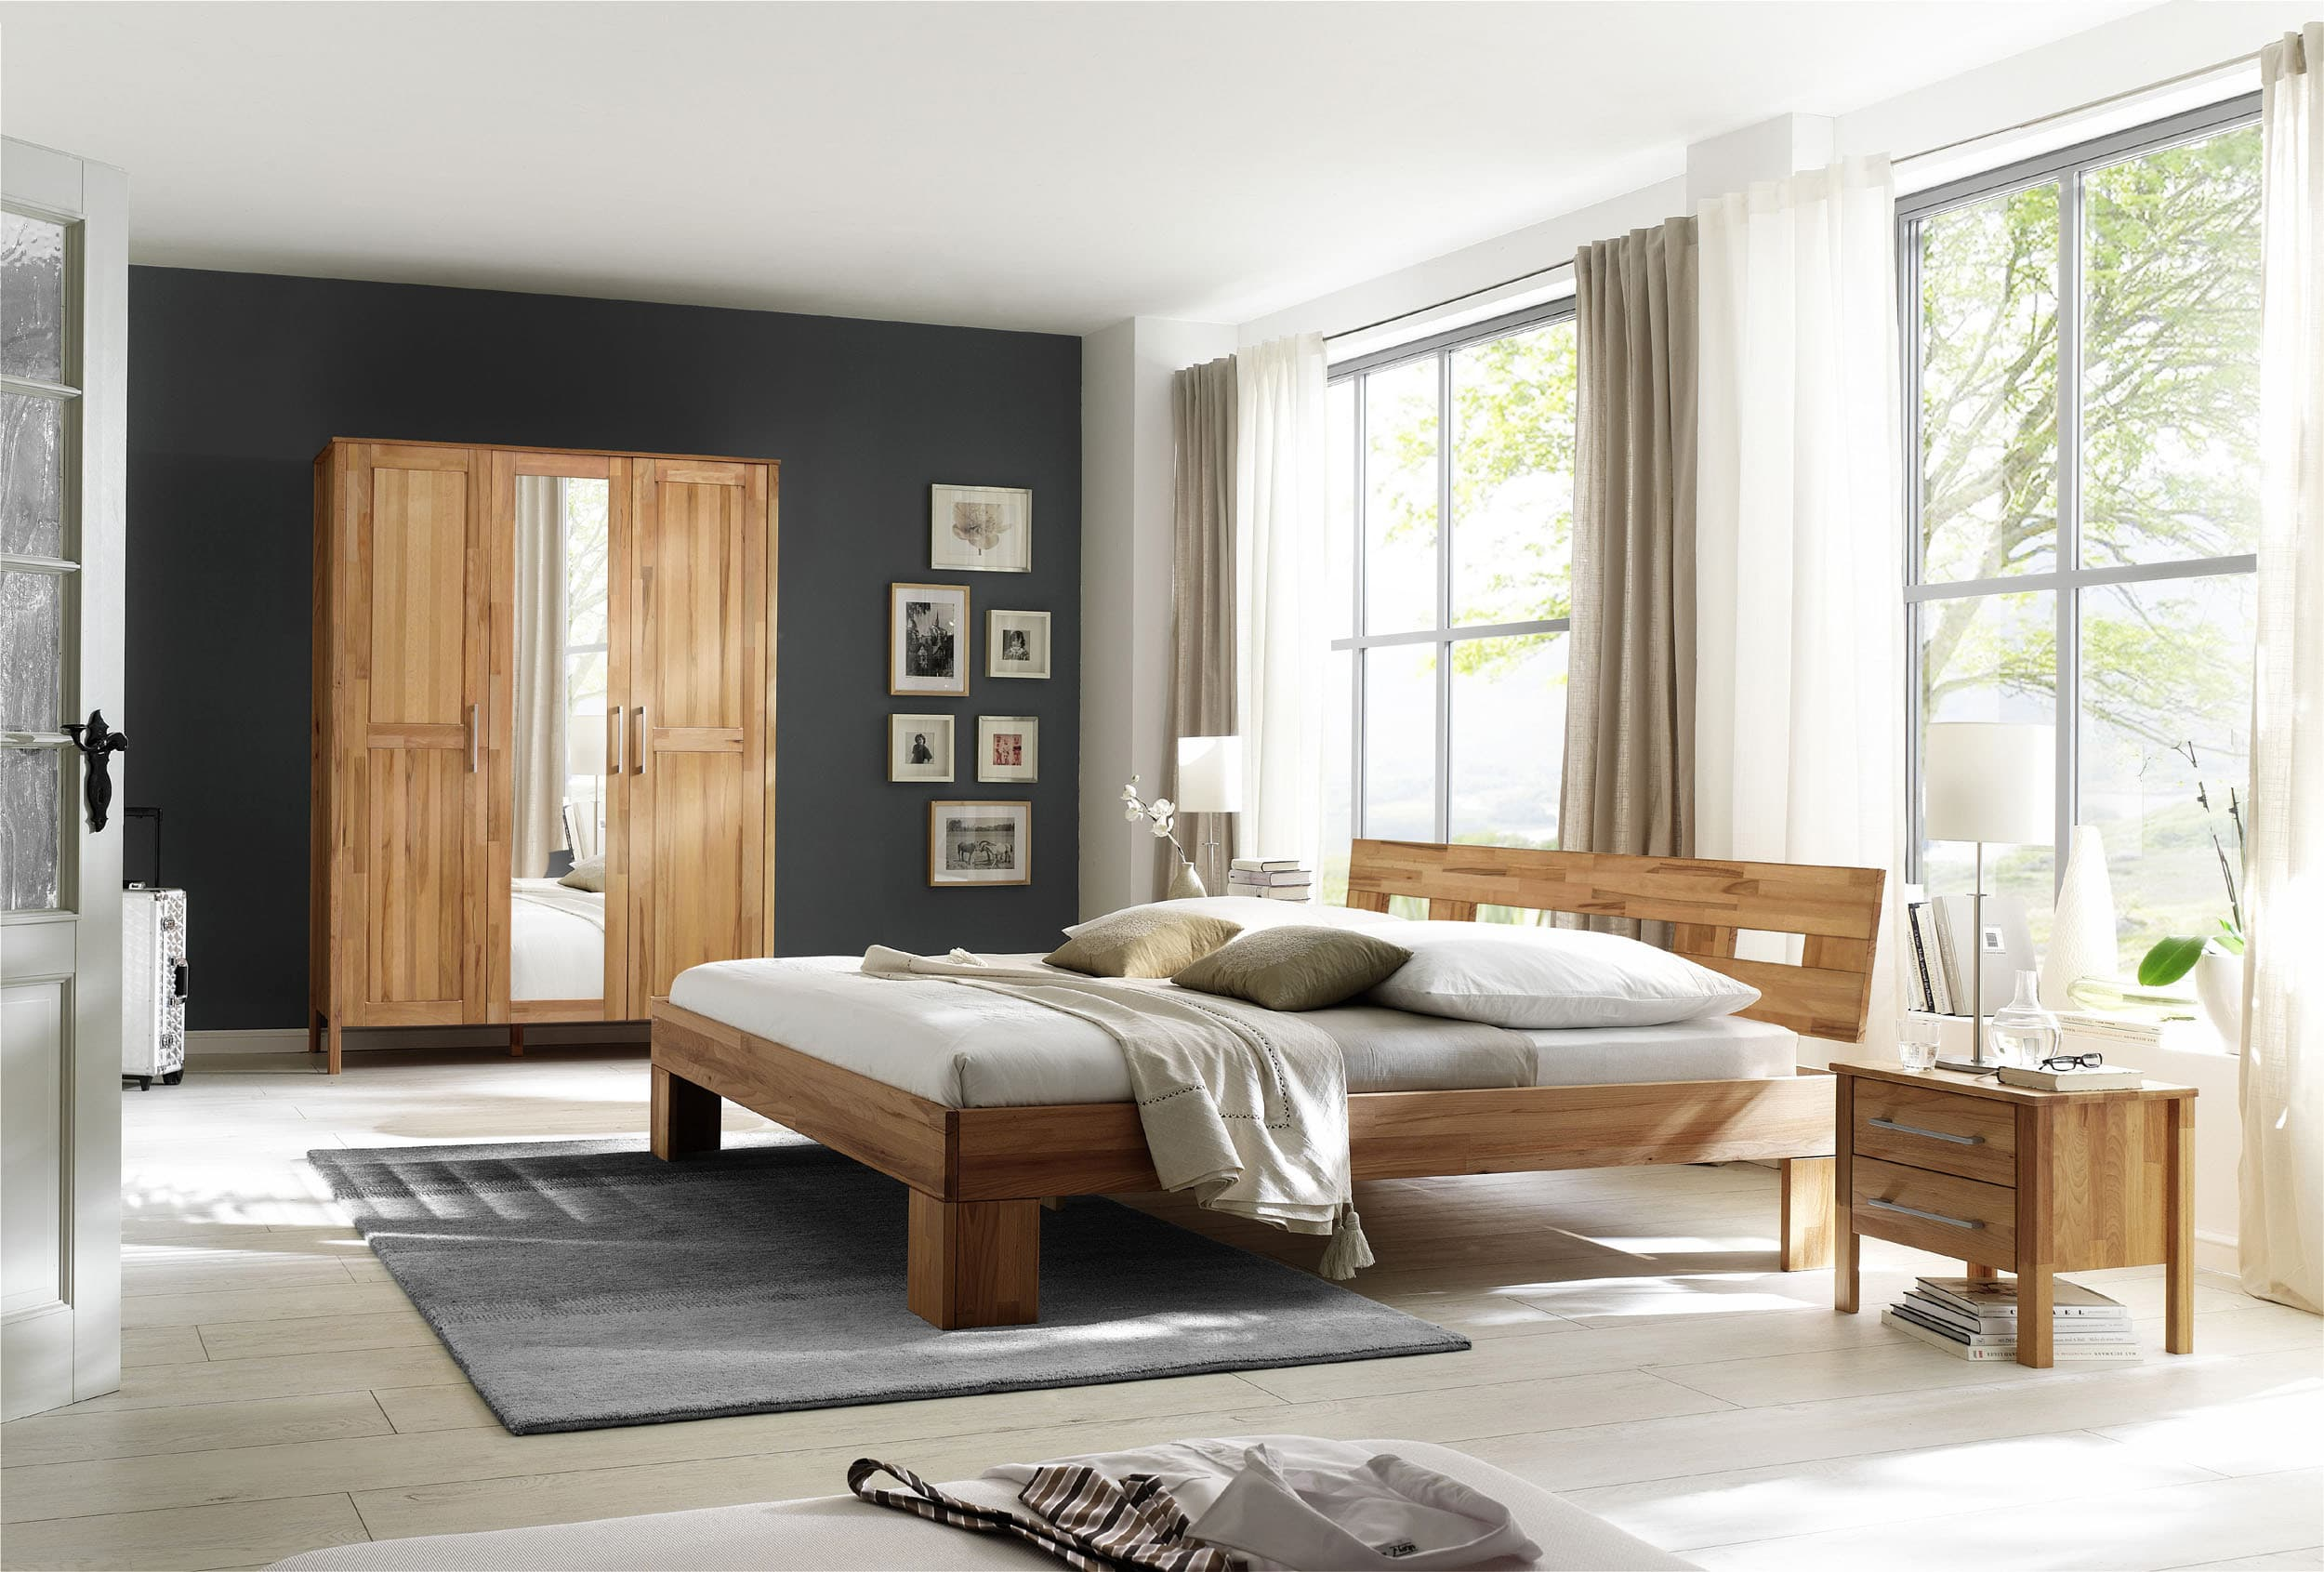 schlafzimmer kernbuche massiv modesty komplett 180 bestellen pick up m bel. Black Bedroom Furniture Sets. Home Design Ideas